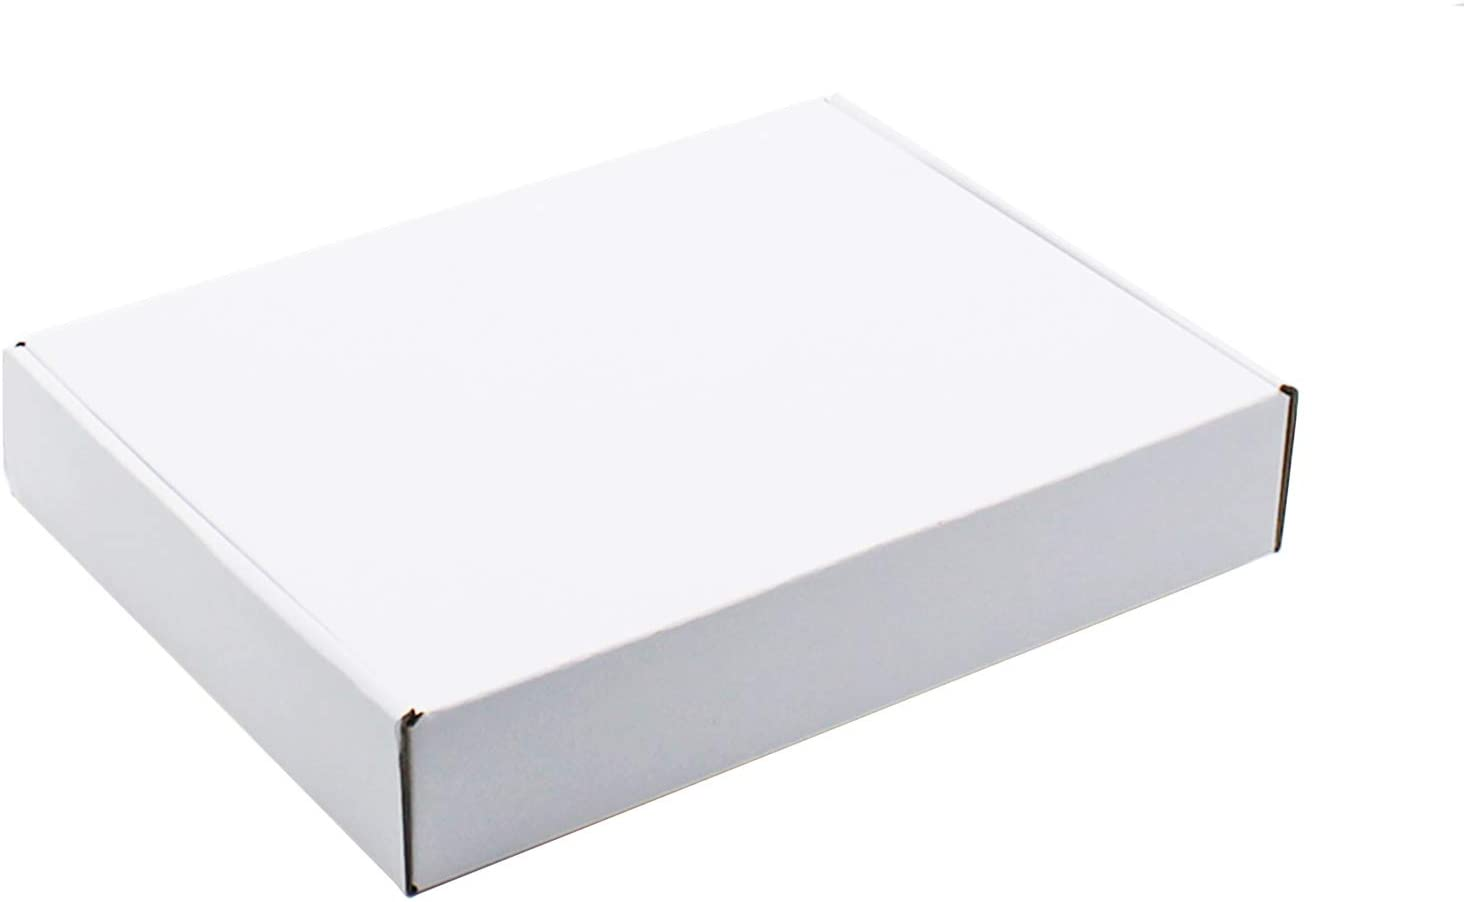 11x8x2 inches Shipping Boxes, White Corrugated Cardboard Box Mailer Boxes for Shipping Gift Boxes for Mailing 25 Pcs (11X8X2)